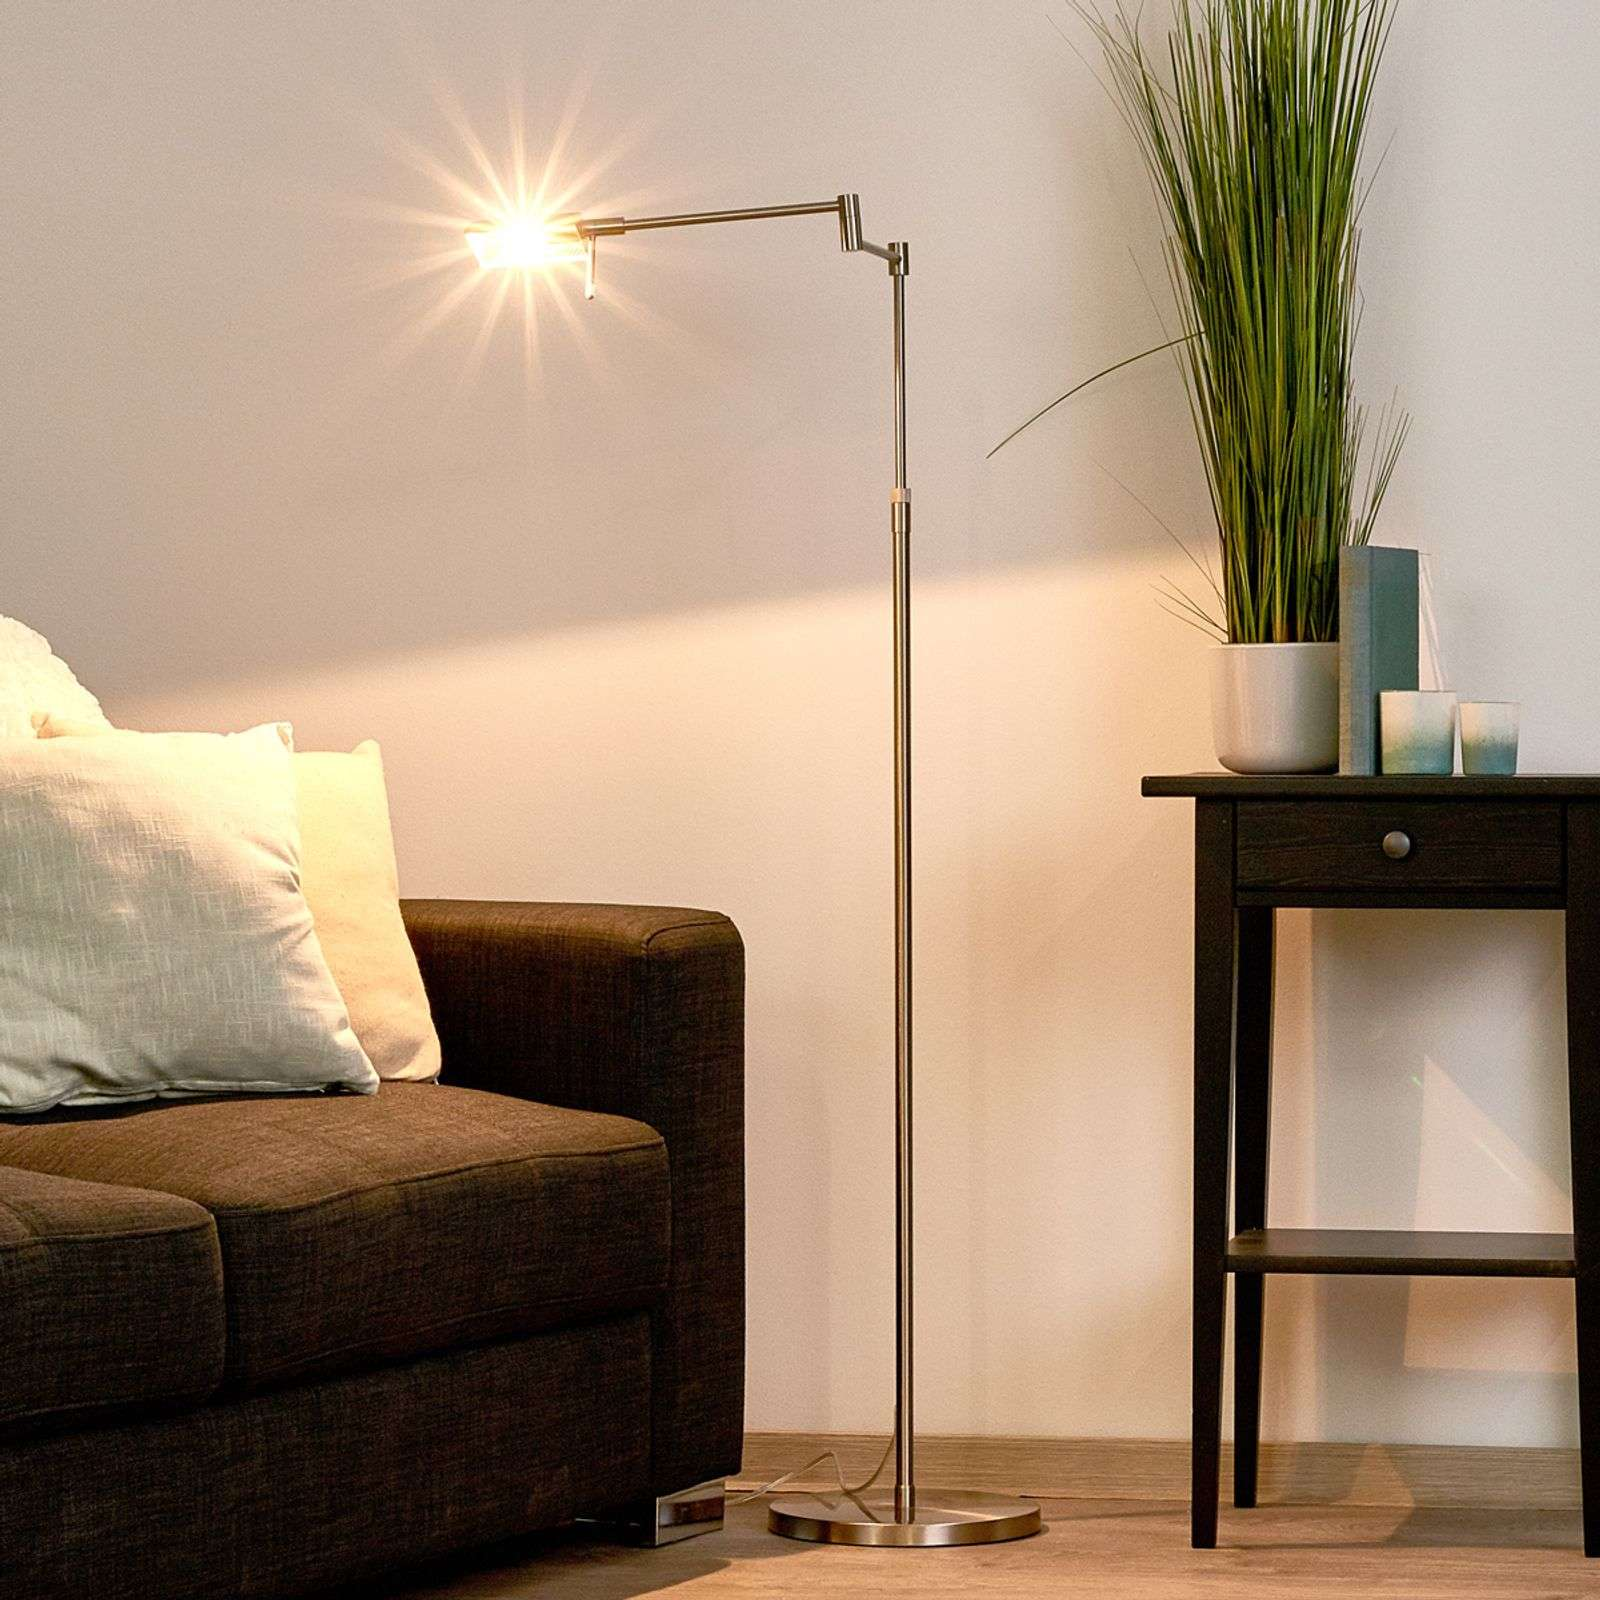 Lampadaire polyvalent Re finition nickel